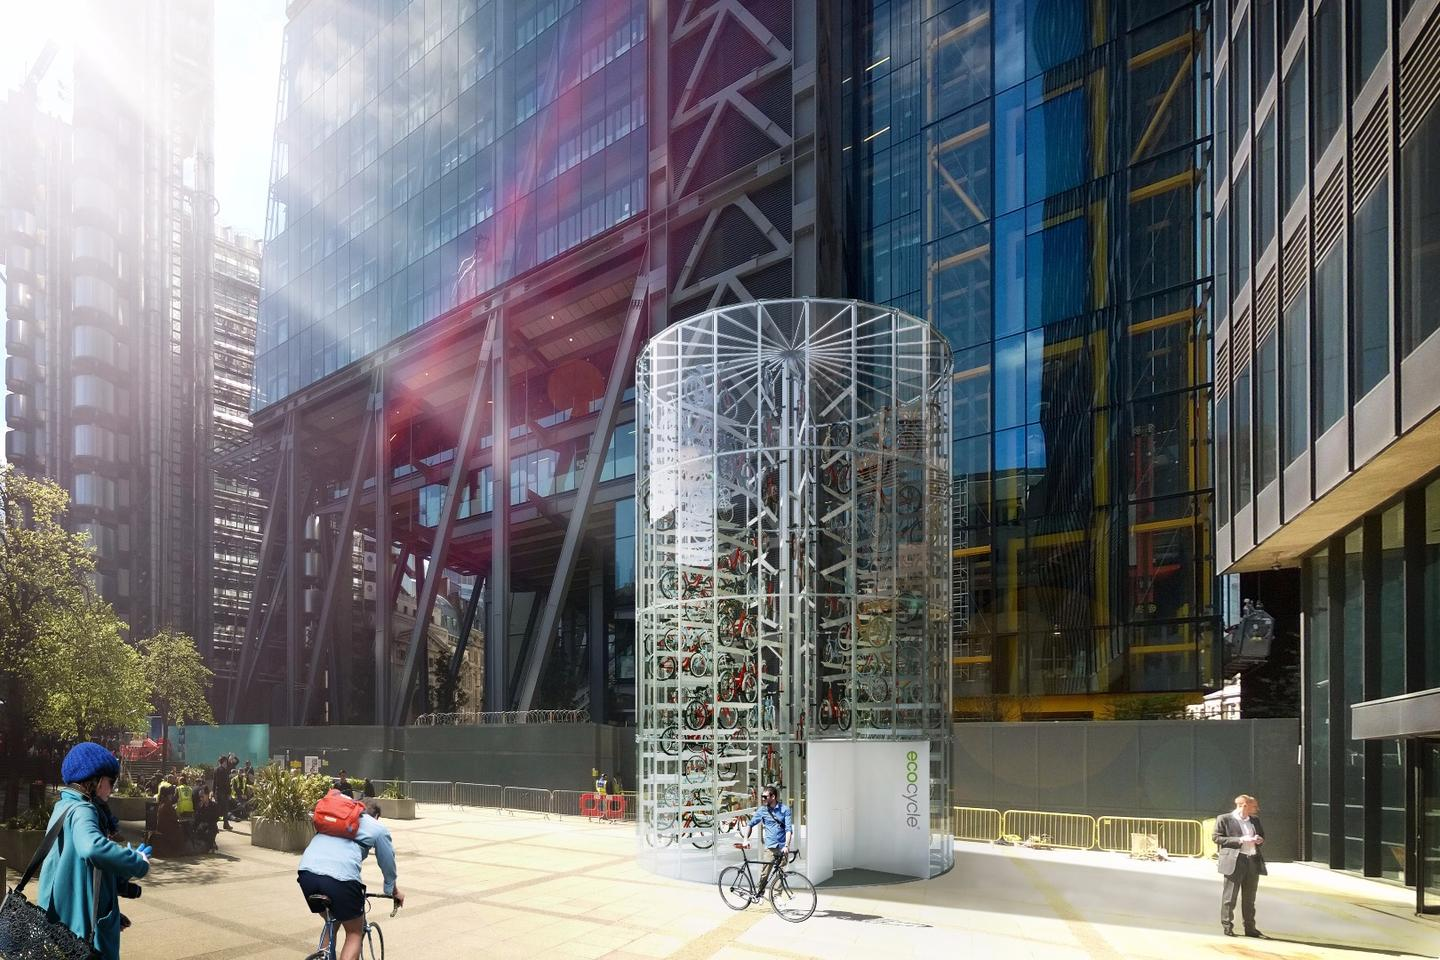 Eco Cycle towers are said to take up just six percent of the space required to accommodate the same number of bikes within 2-tier racking